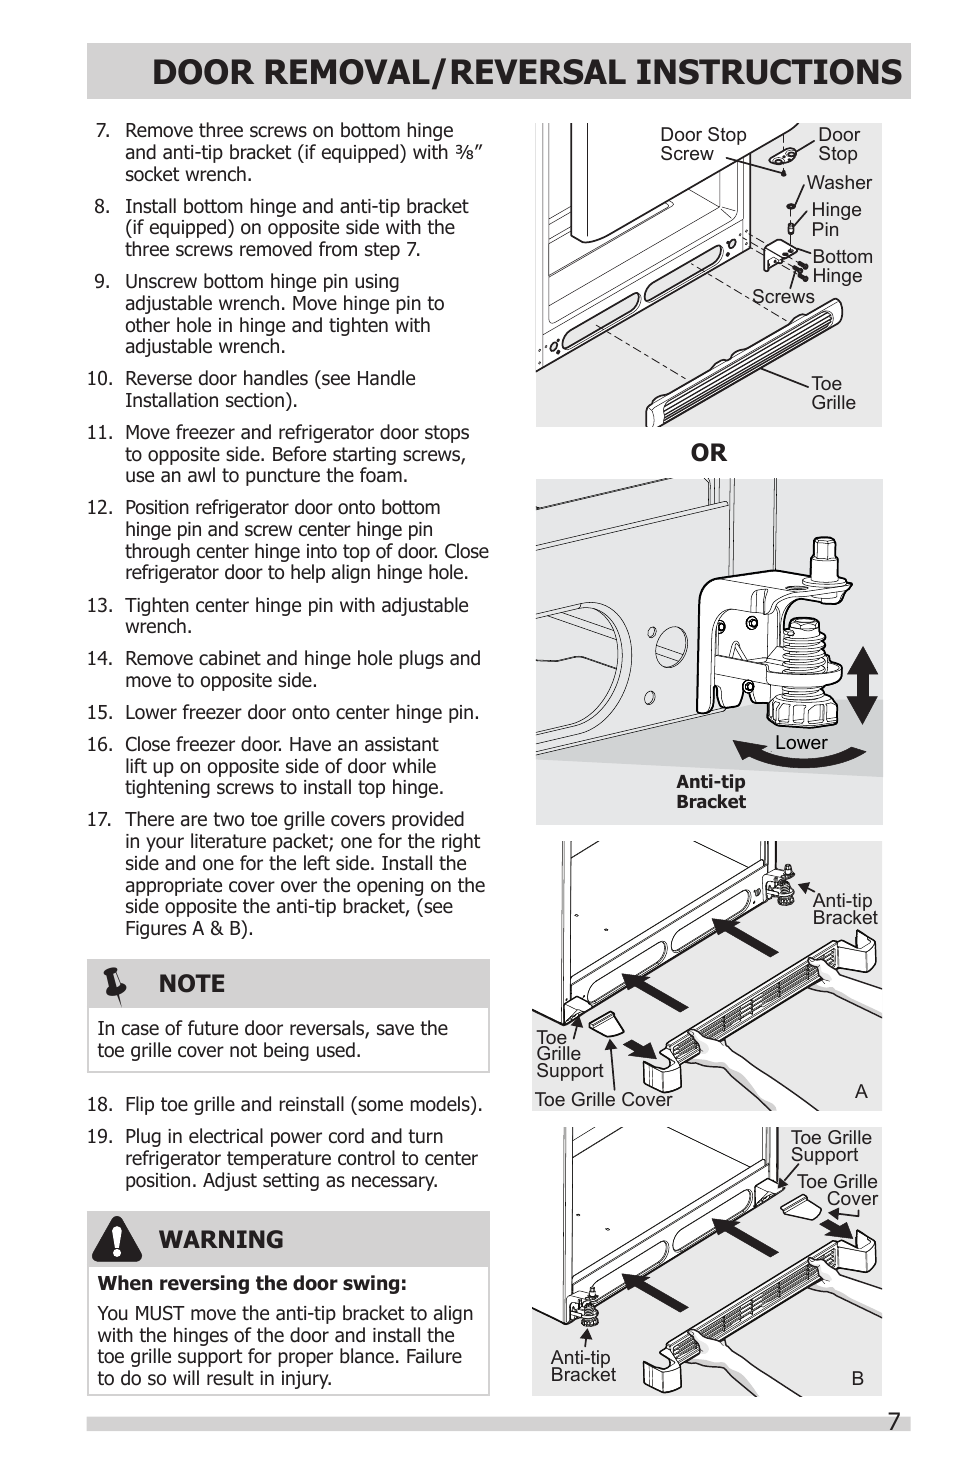 Door Removal/reversal Instructions, 7warning | FRIGIDAIRE FFHT1831QQ User  Manual | Page 7 / 19